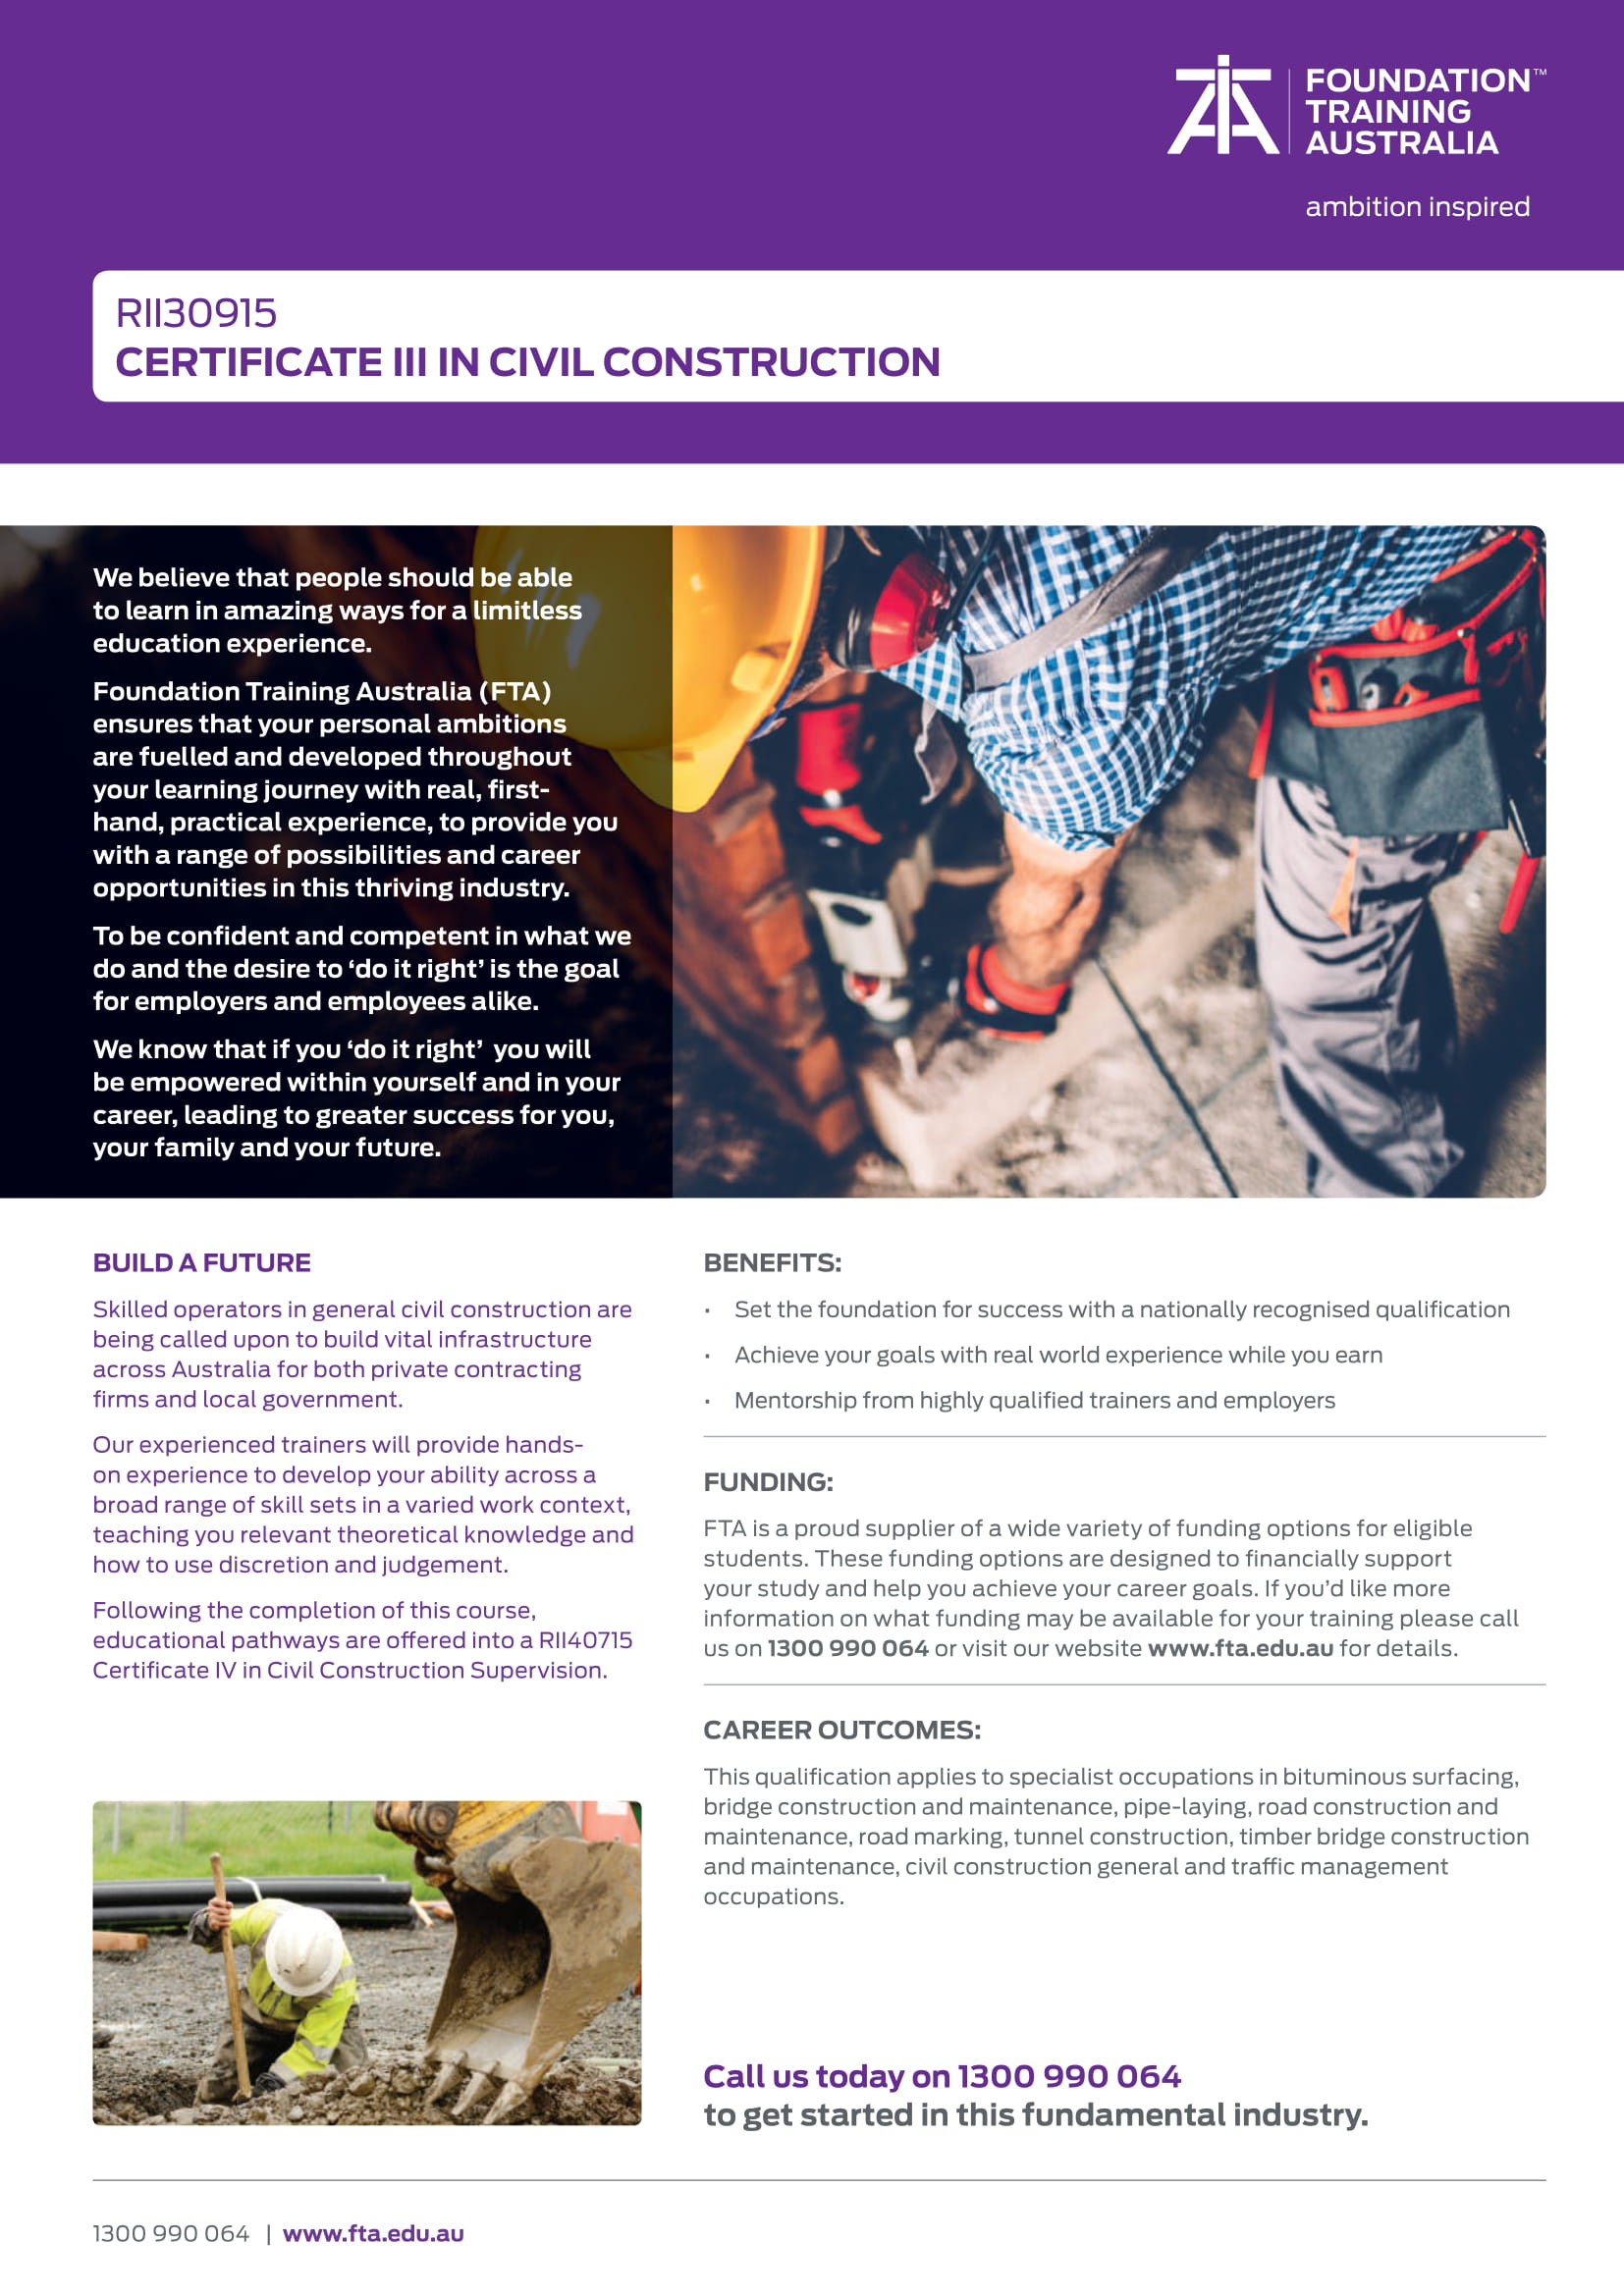 https://www.fta.edu.au/wp-content/uploads/2020/06/TP1.MK_.009-Civil-Construction-General-Course-Flyer-RII30915-V3-DIGITAL.compressed-1.jpg